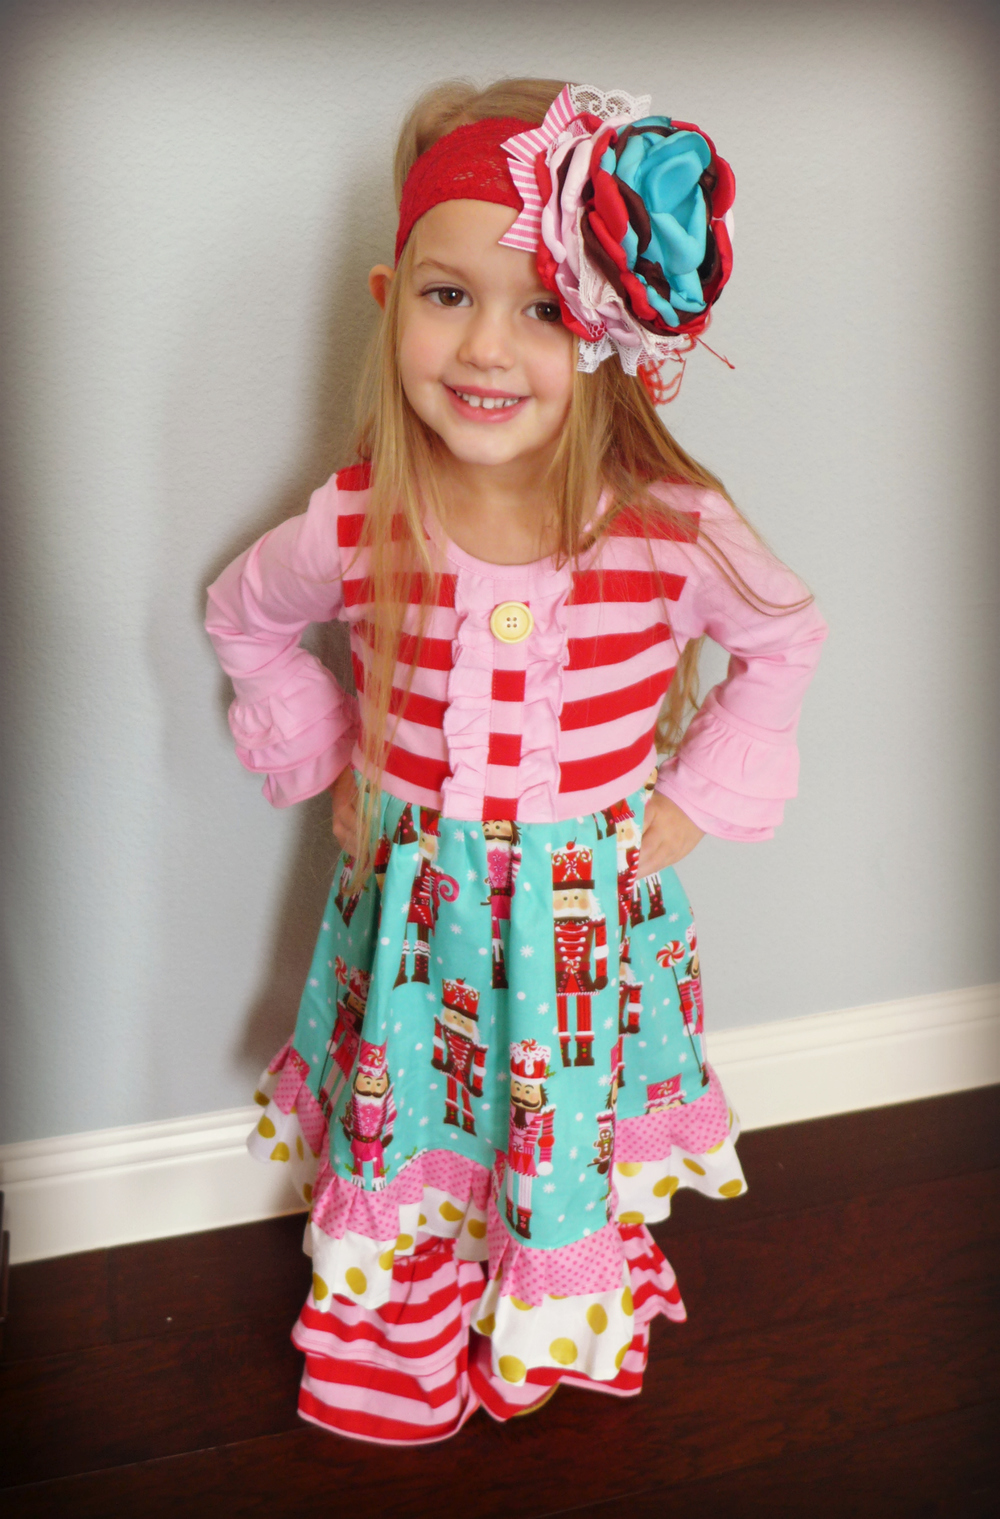 Custom Headband by Appelilly Couture, Nutcracker Outfit from MOMI Boutique